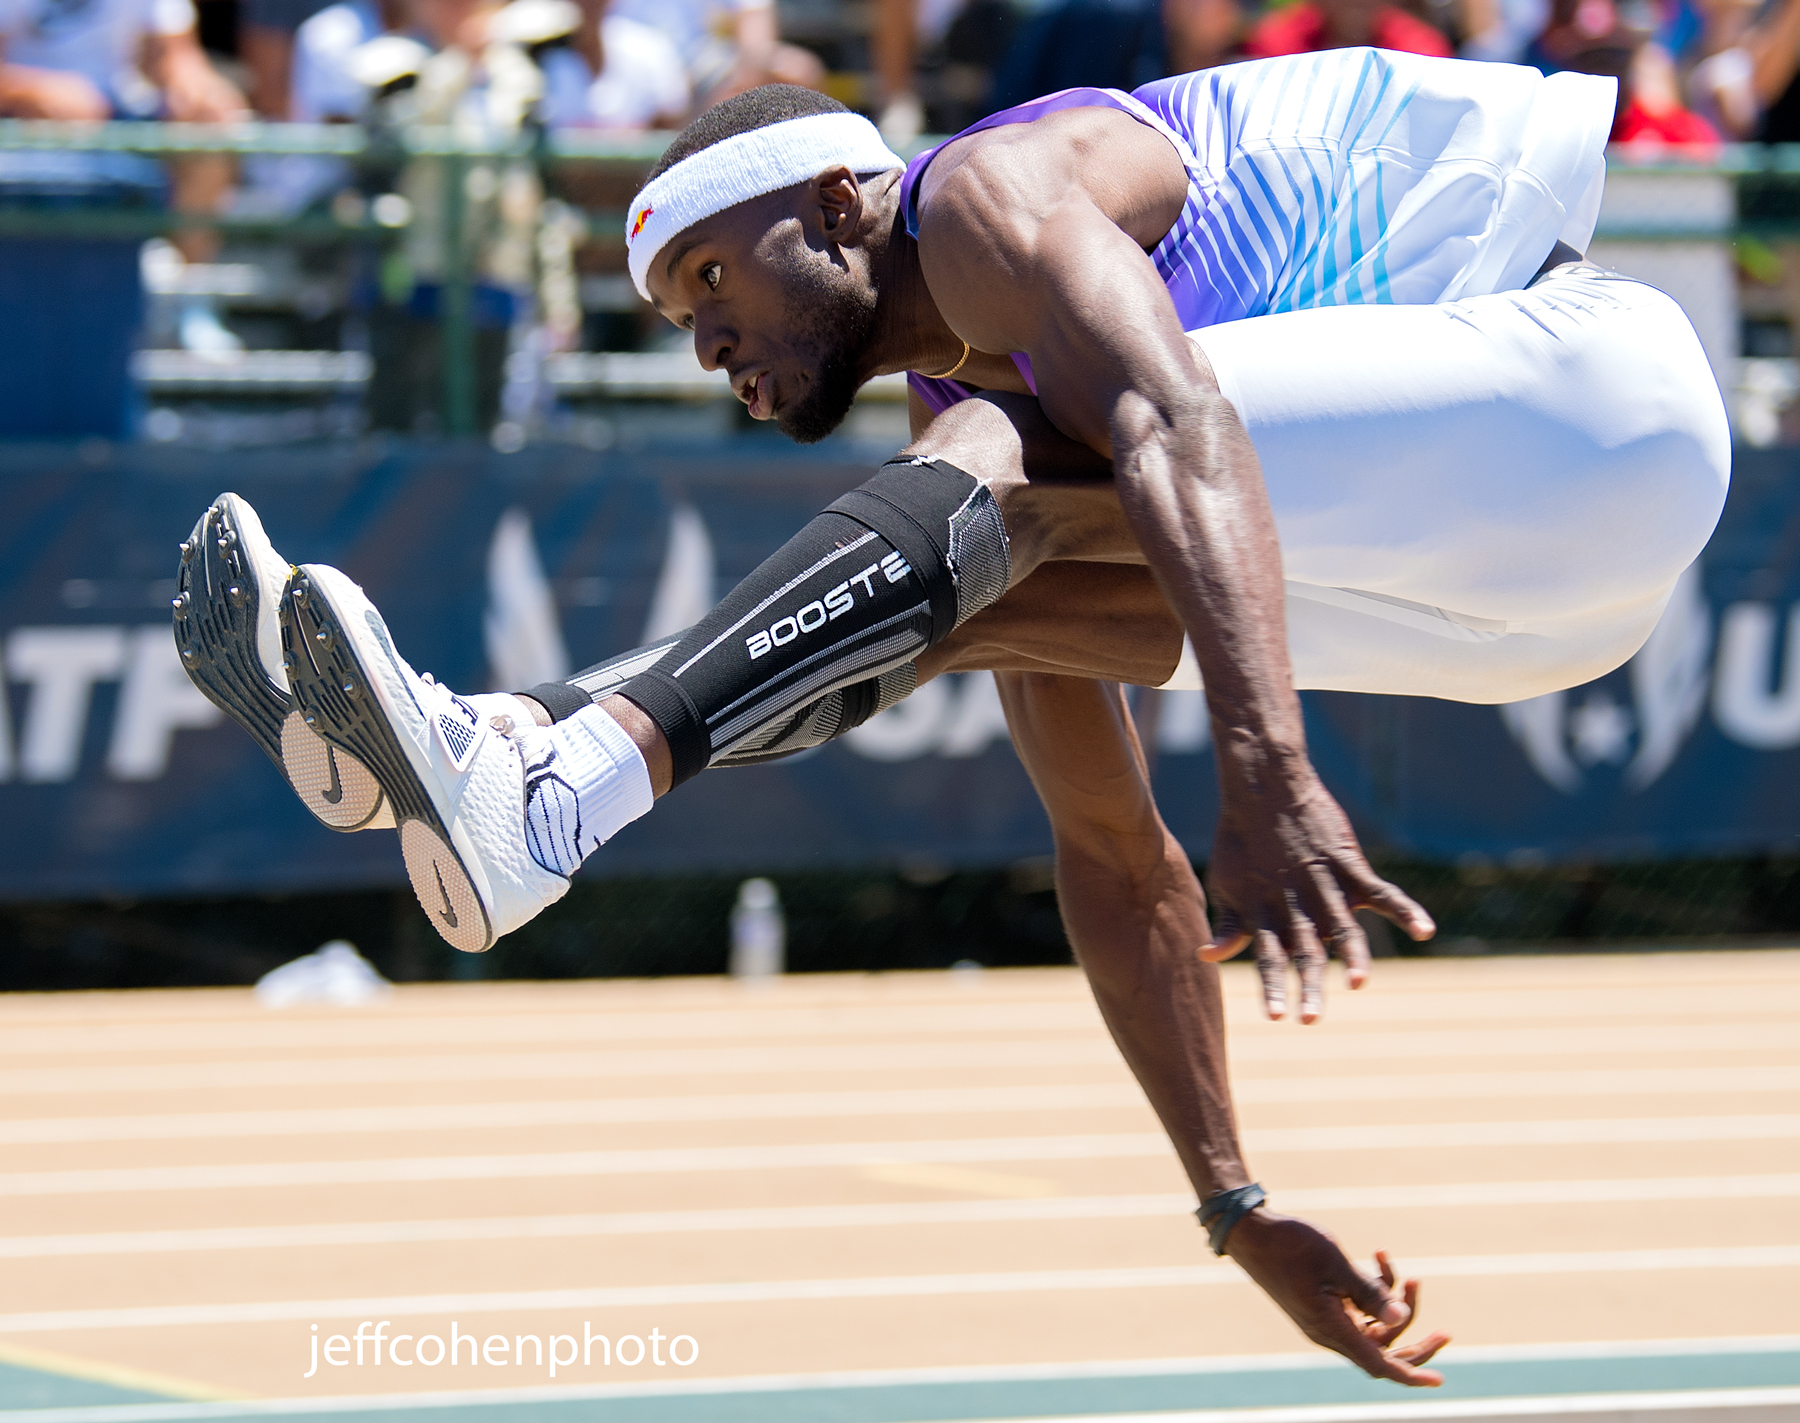 2017-usatf-outdoor-champs-day-4-claye-tjm-flight--jeff-cohen-photo--1265-web.jpg